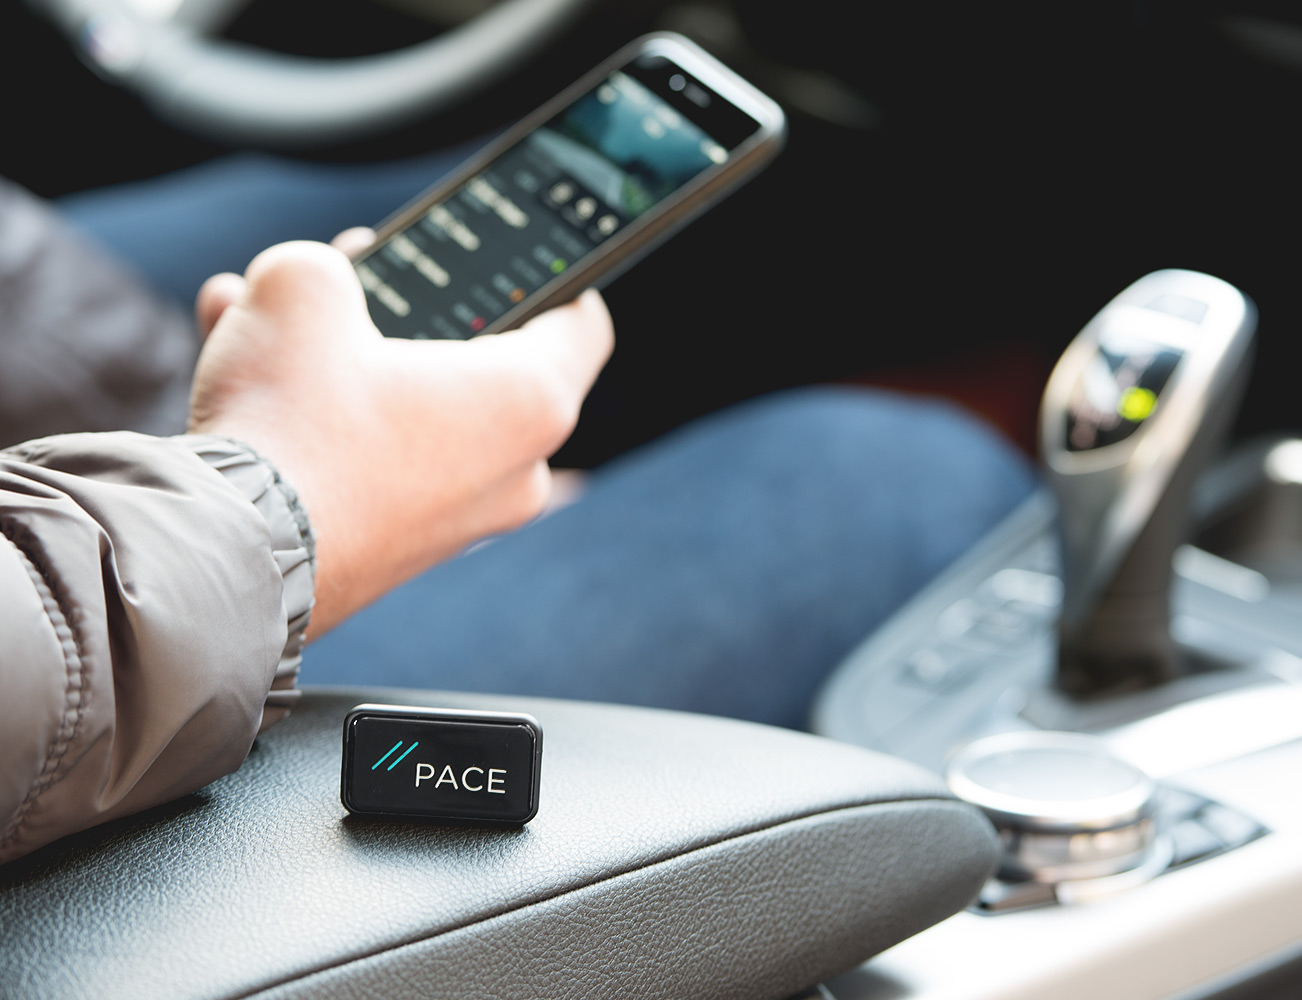 PACE Link – Turn your Car Into a Smartcar!